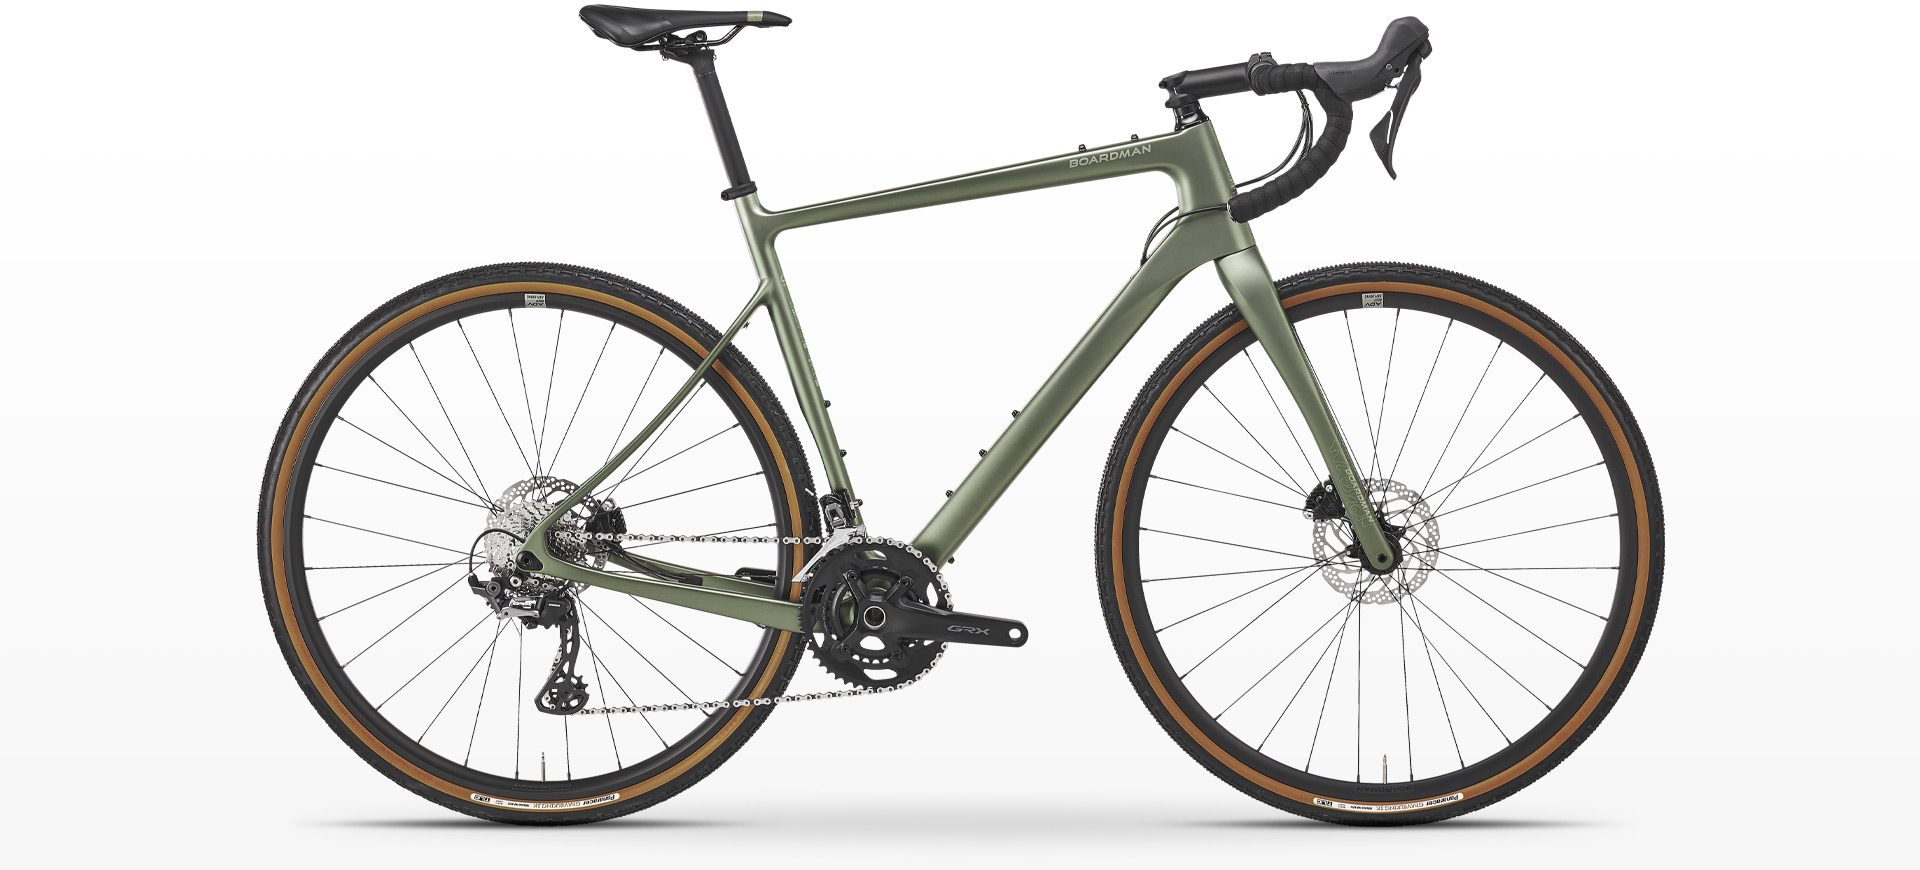 Boardman ADV 9.0 Carbon Adventure GRX Gravel Bike Image